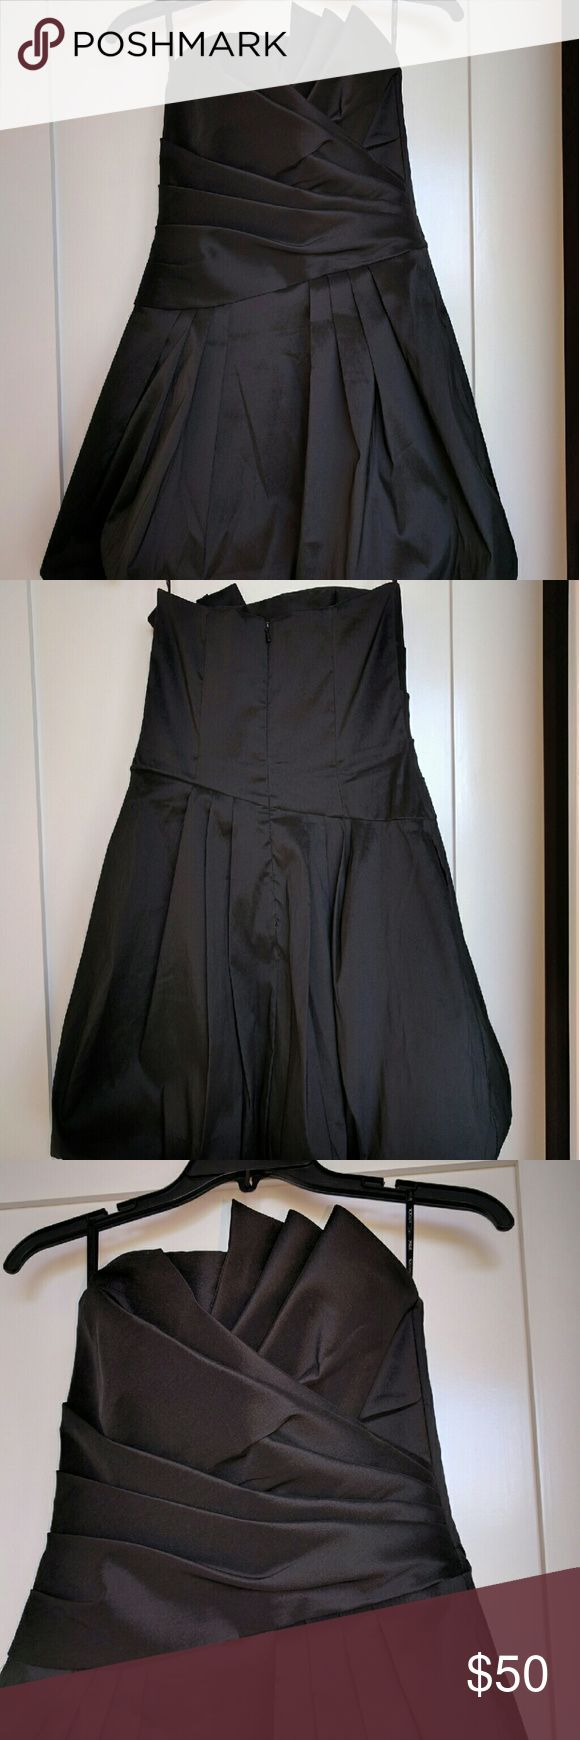 Jessica McClintock Balloon Hem Cocktail Dress Balloon Hem Strapless Black Cocktail dress with architectural folds top. Size 4. Jessica McClintock Dresses Strapless